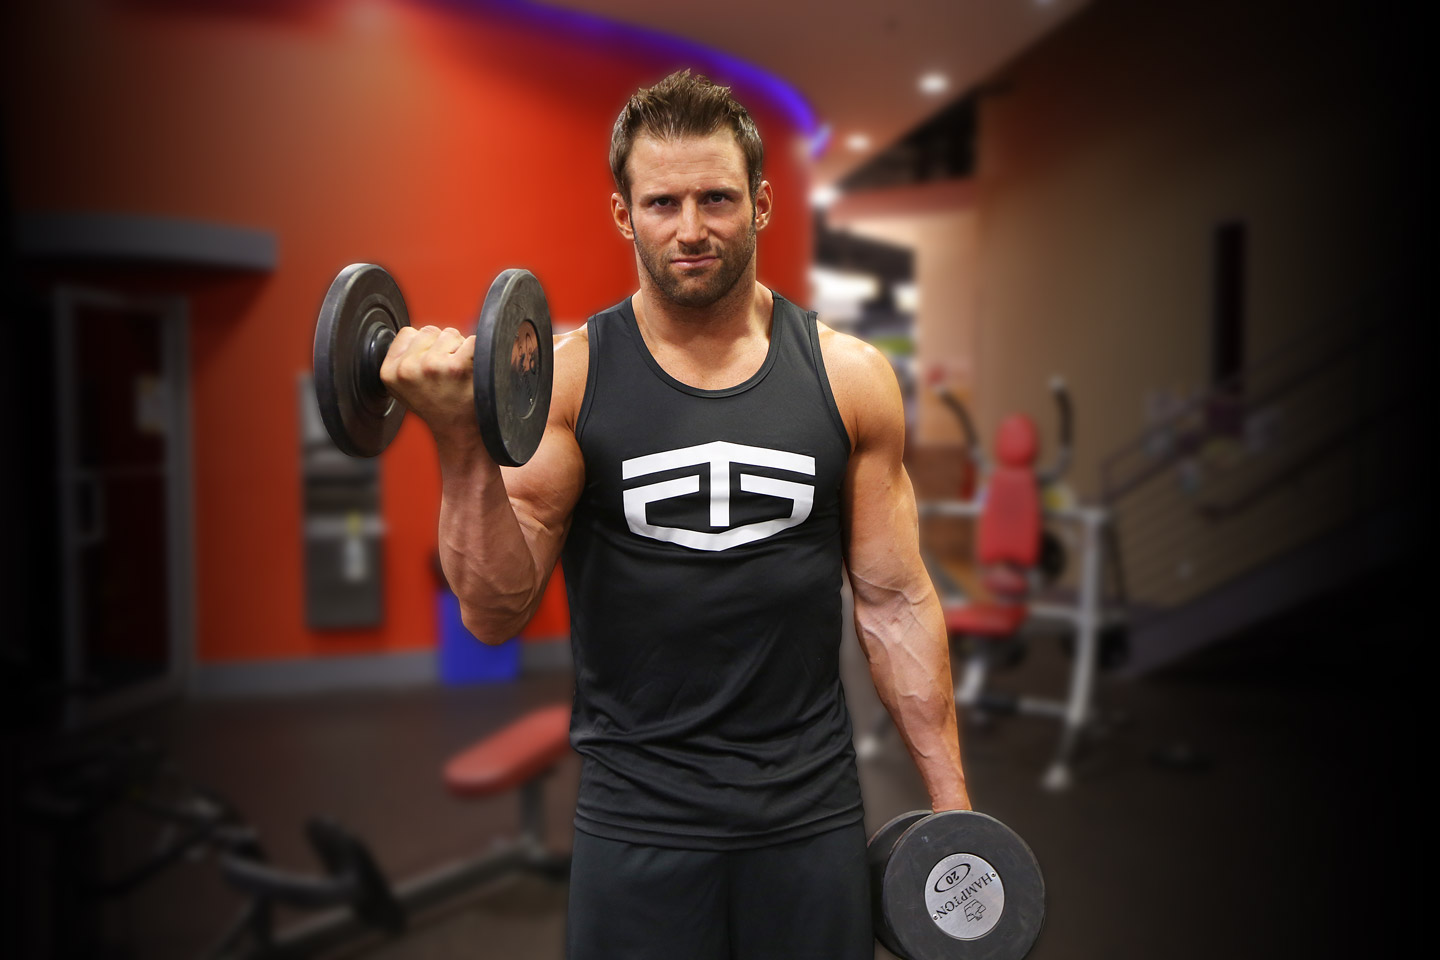 WWE superstar Zack Ryder